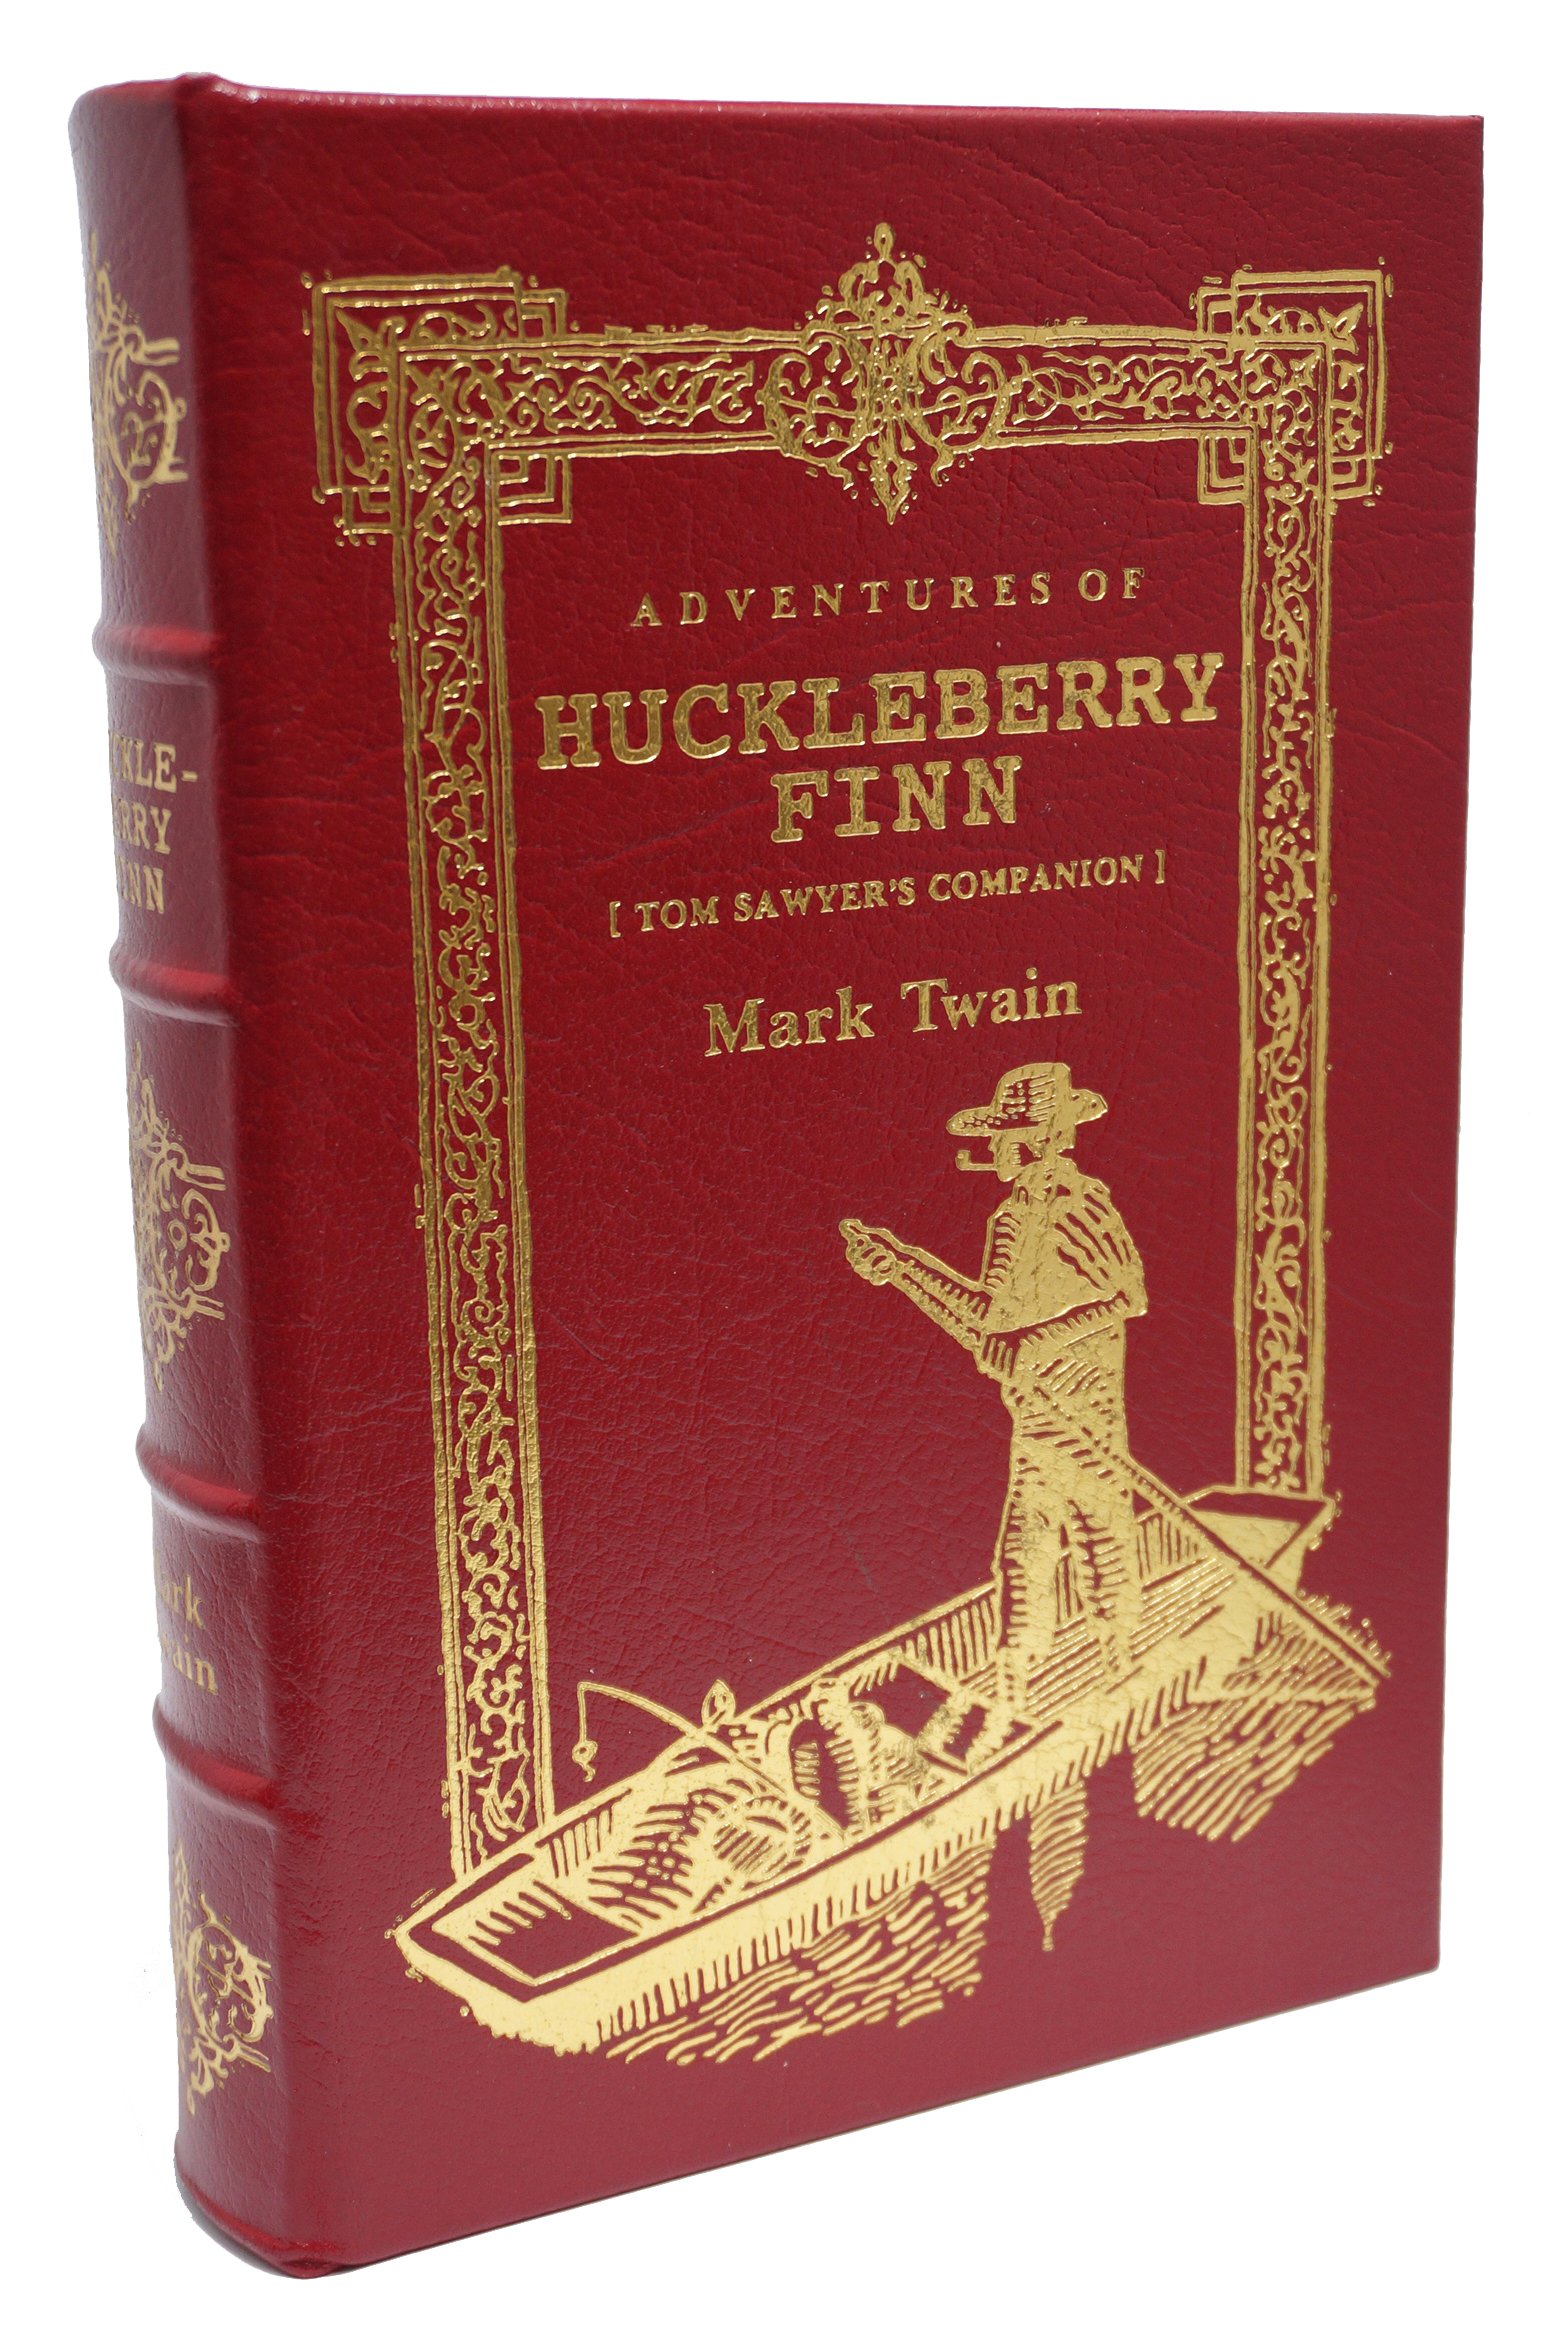 ADVENTURES OF HUCKLEBERRY FINN. Tom Sawyer's Companion. A Volume in The 100 (One Hundred) Greatest Books Ever Written., Mark Twain